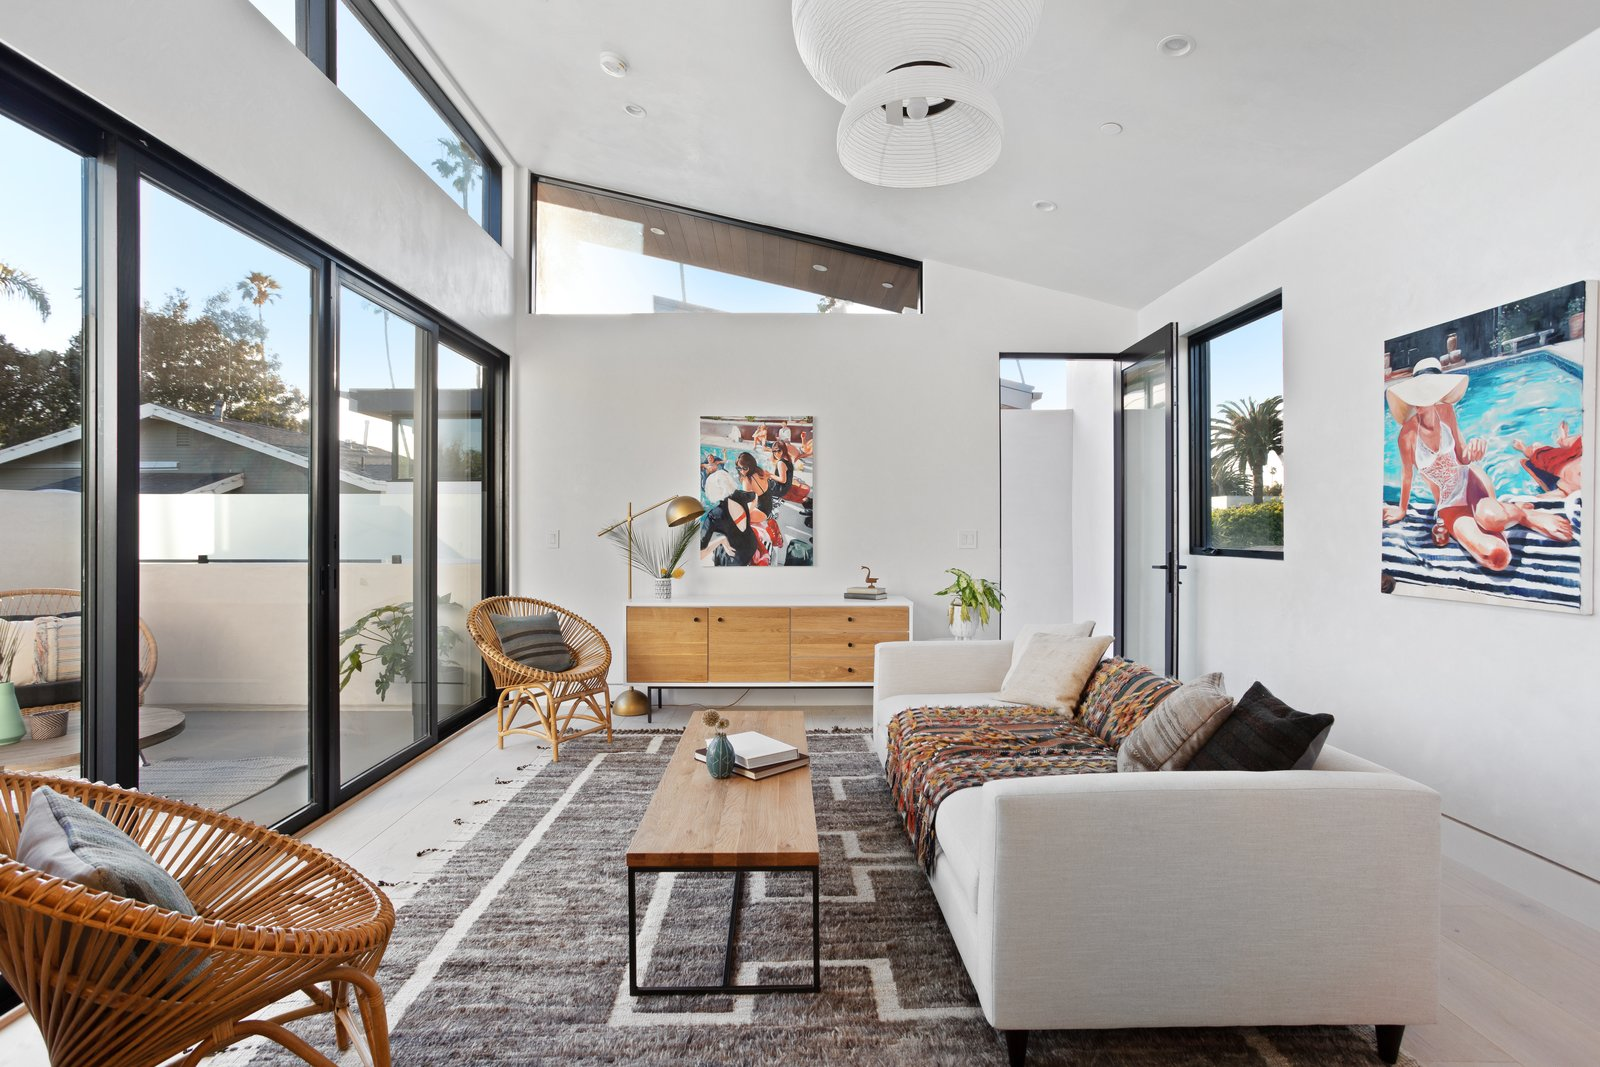 Living Room, Console Tables, Rug Floor, Stools, Shelves, Recessed Lighting, Pendant Lighting, Lamps, and Sofa Second level detached accessory space gives added flexibility.  Milwood Residence by Mayes Office